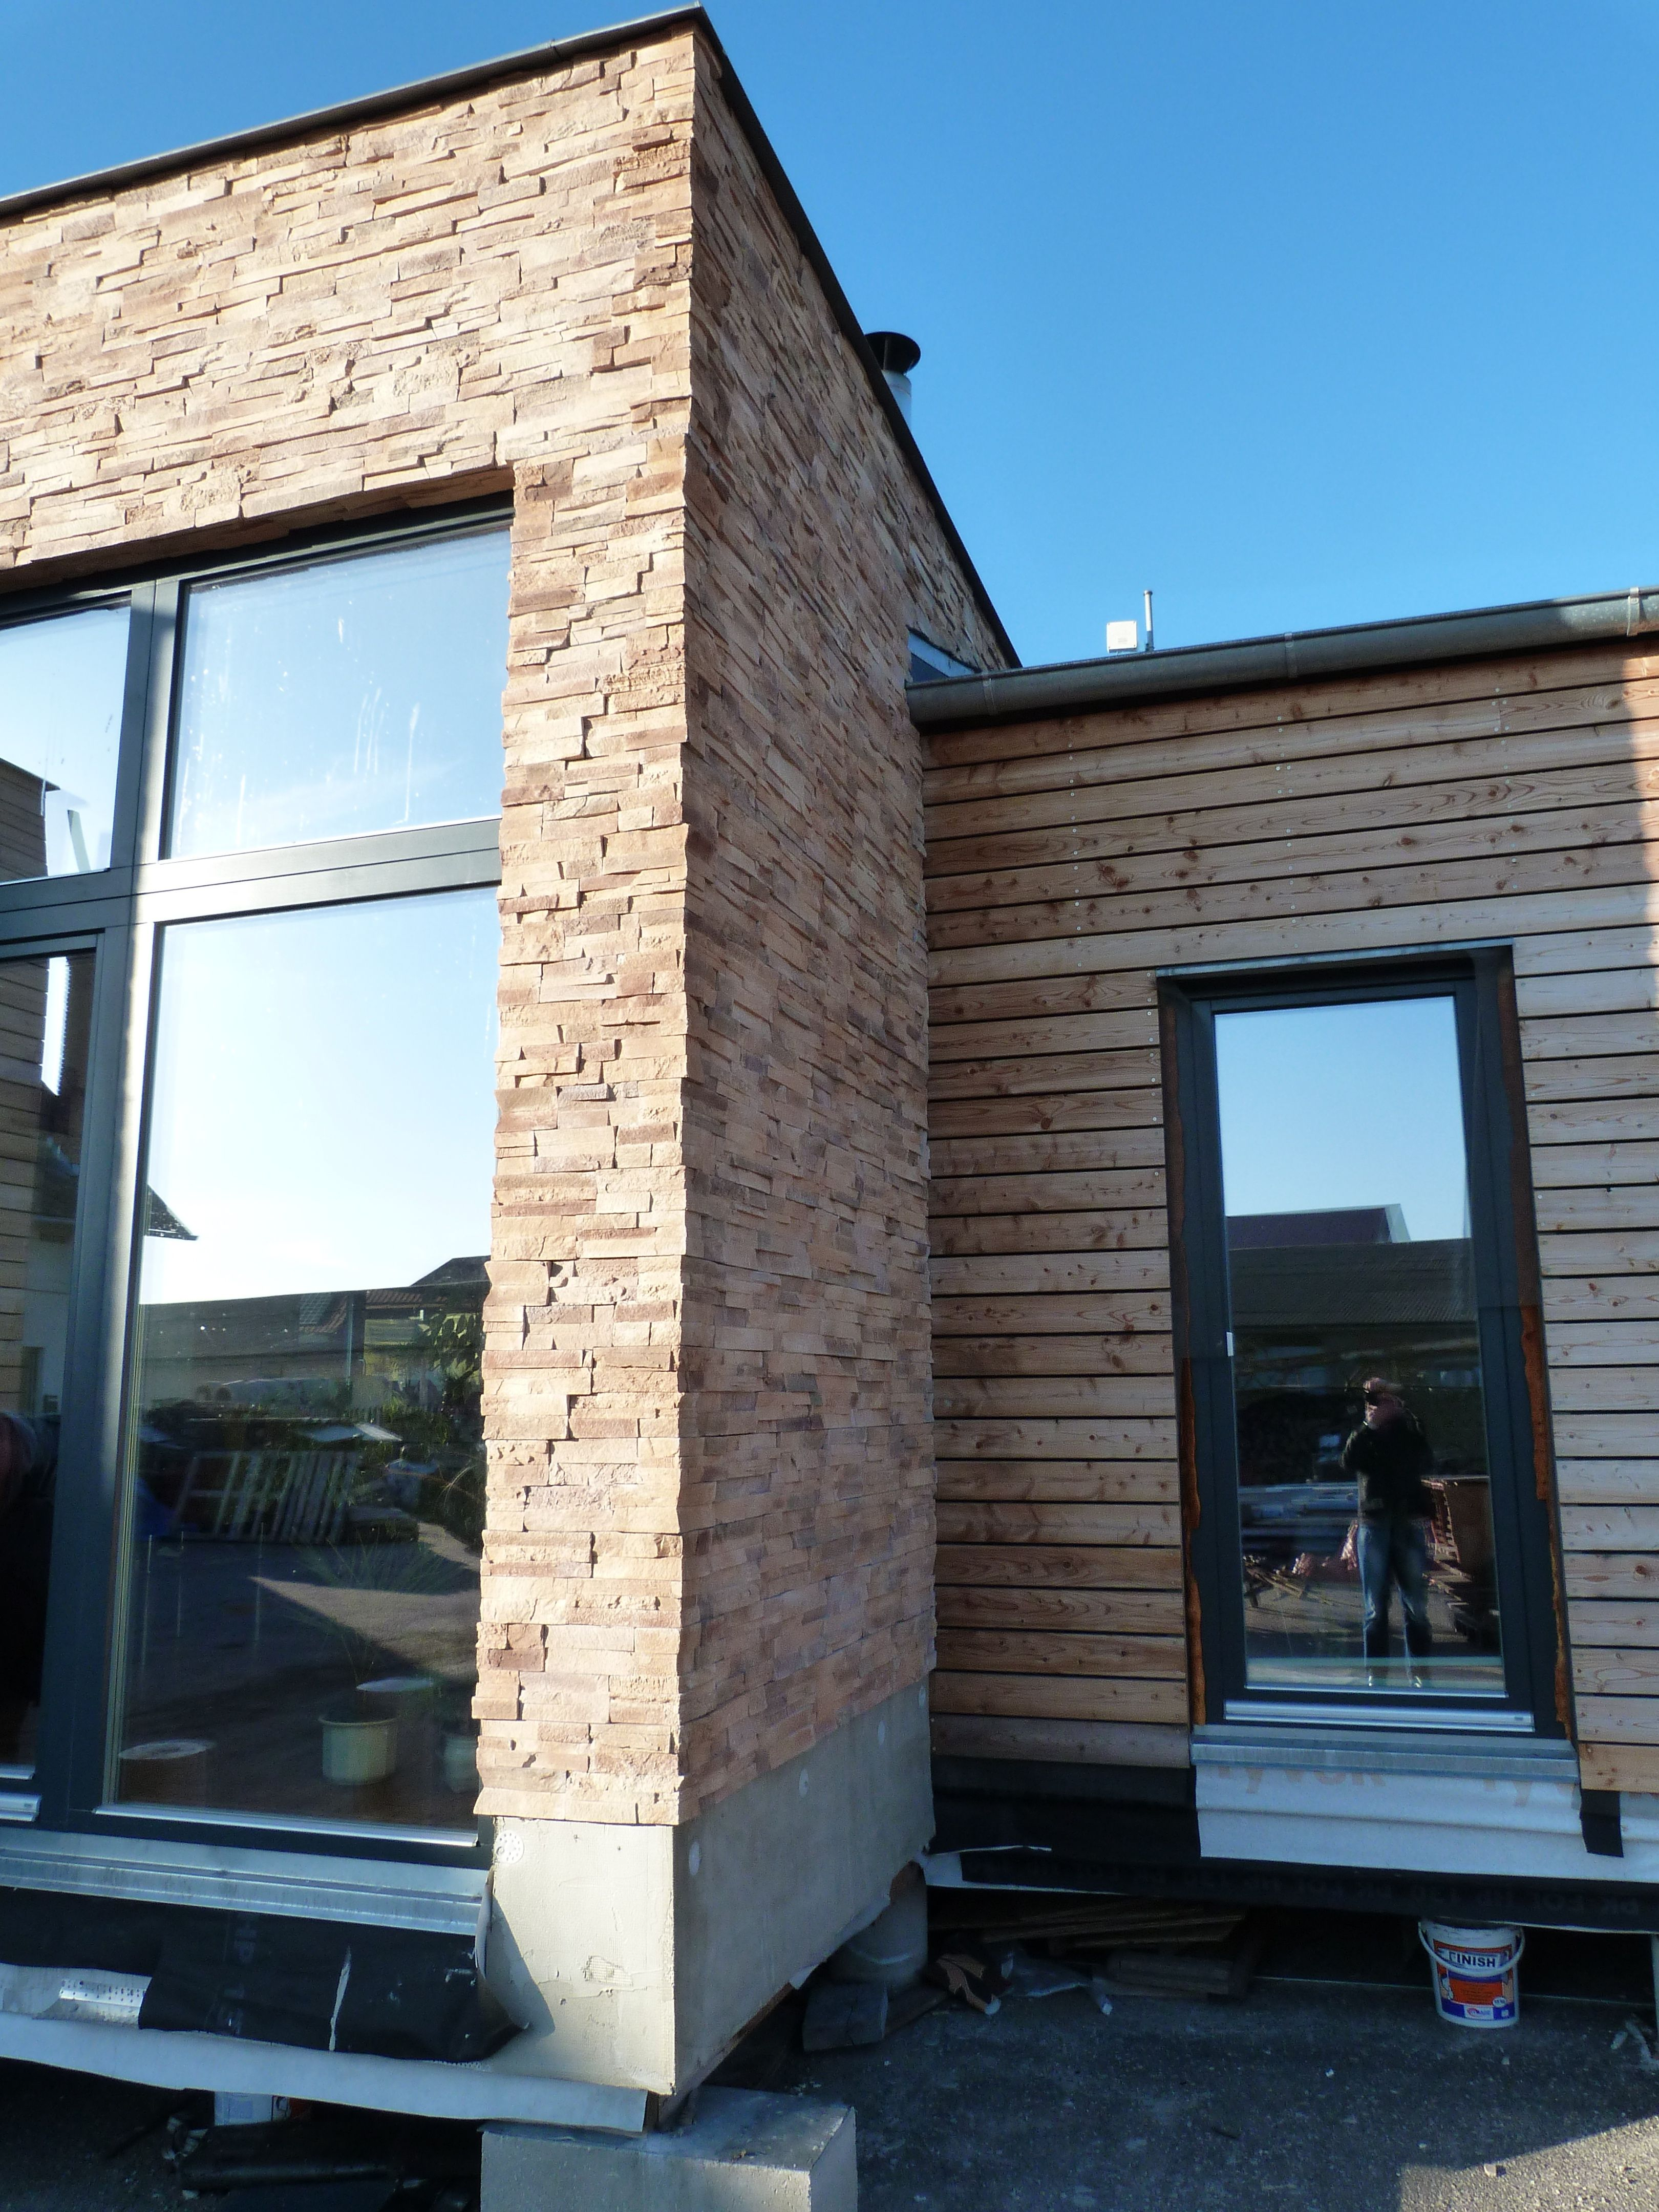 On The Facade Of The House Was Used A Combination Of Larch